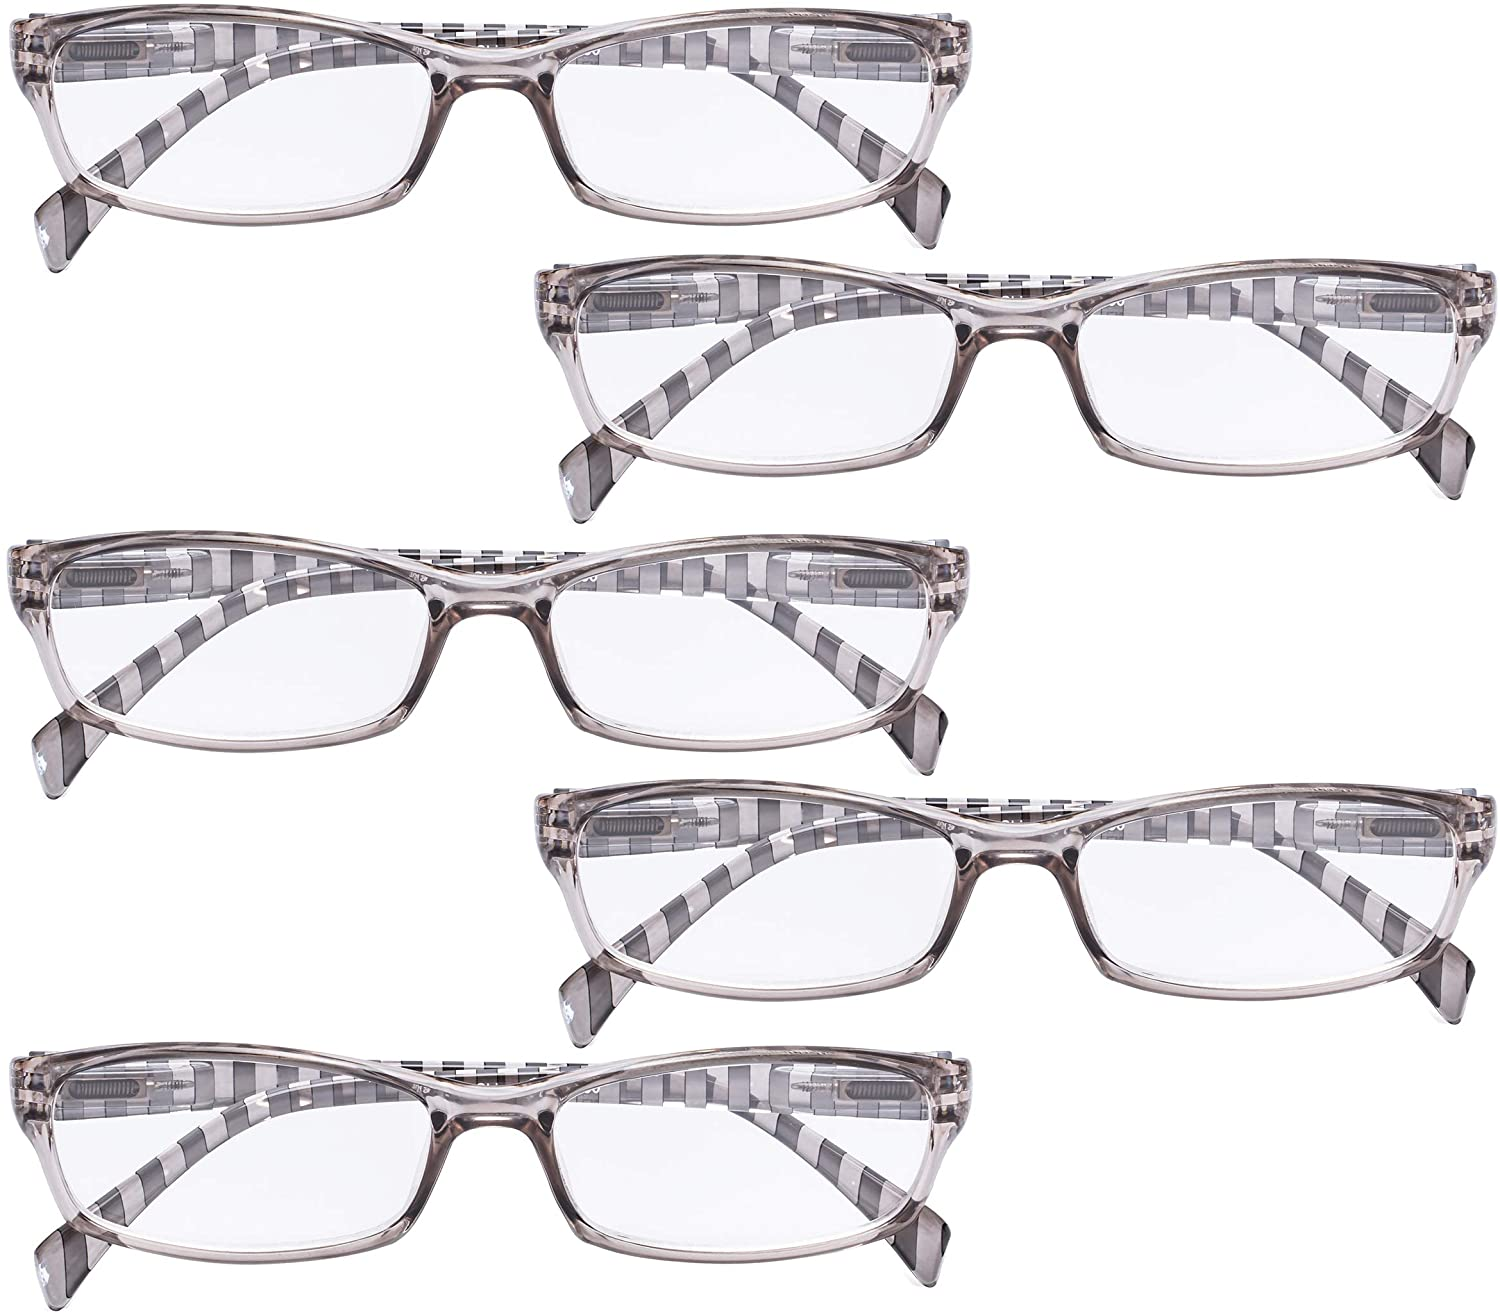 BFOCO 5 Pairs Reading Glasses with Stripe Temples Reader Eyeglasses for Women Reading